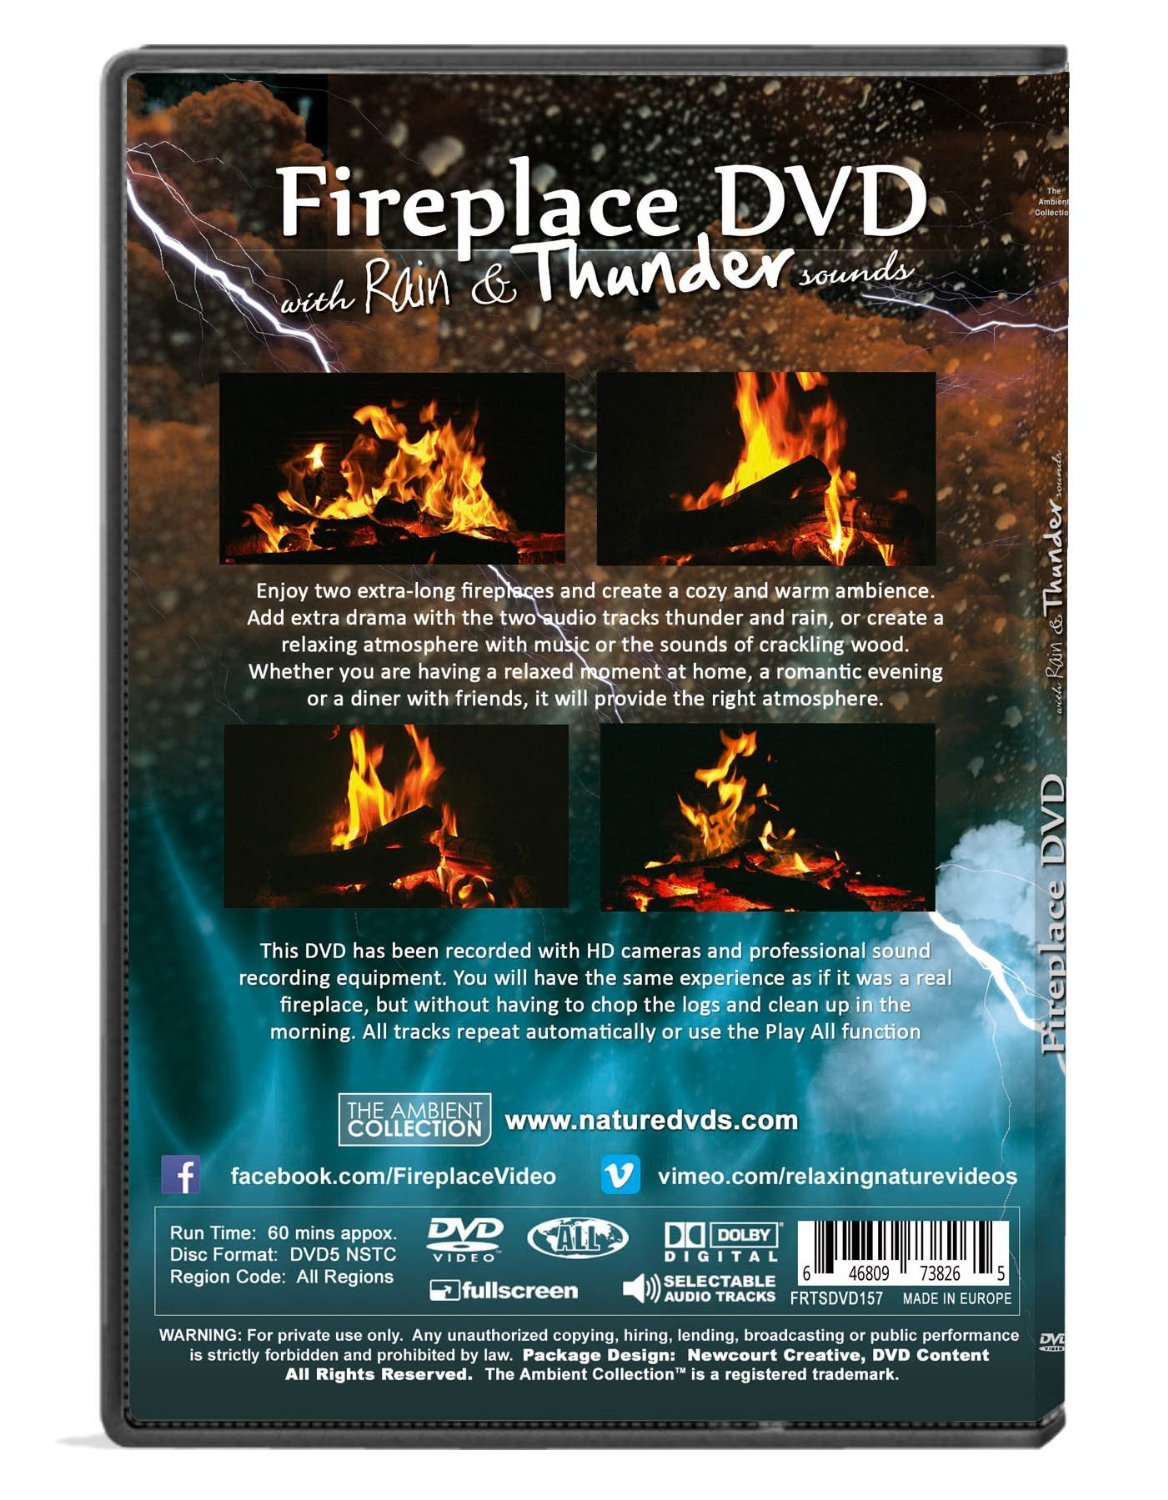 amazon com fire dvd fireplace with rain and thunder sounds the